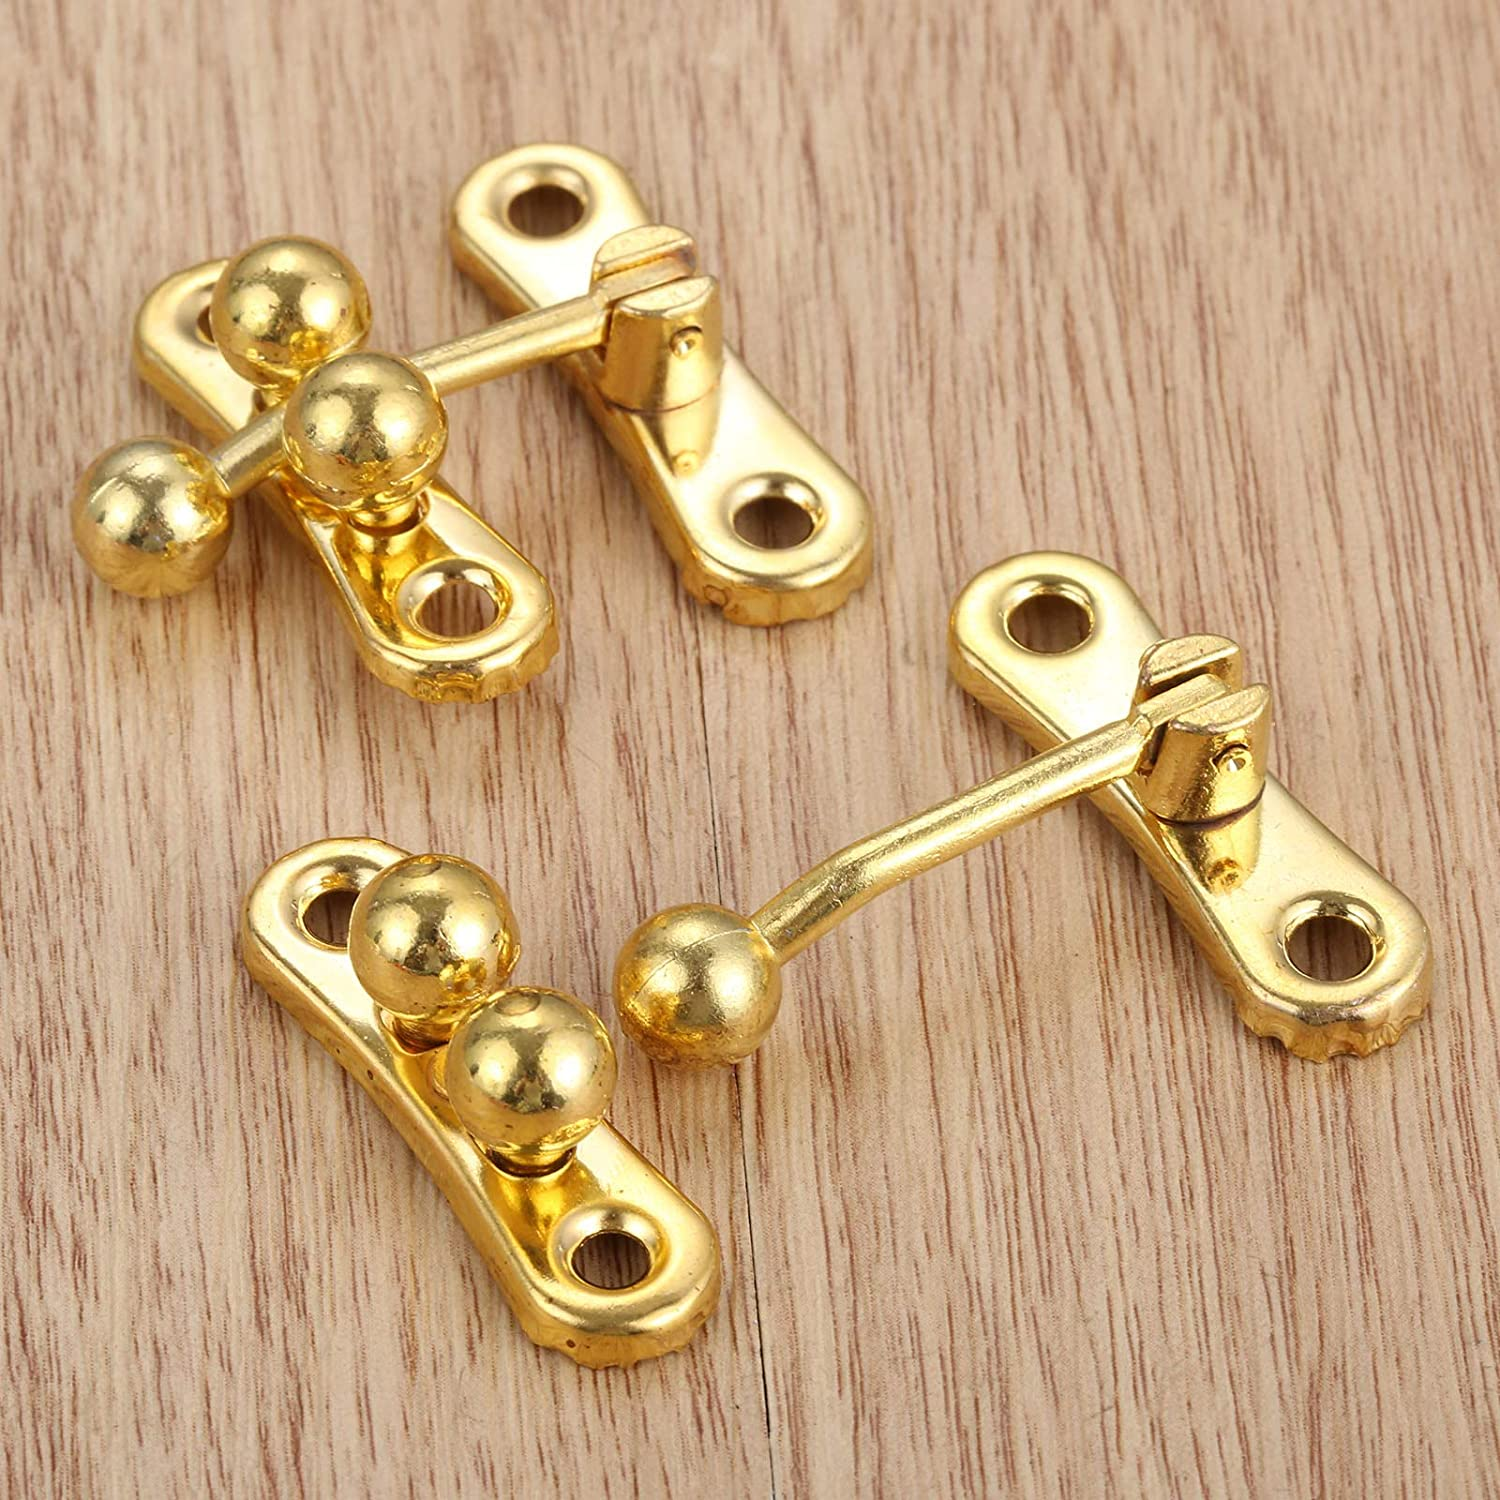 2 Pcs Three Beads Latch Hasps with 8 Screws Clasp Latch Lock for Chests Trinket Boxes and Toolboxs Gold Boxes